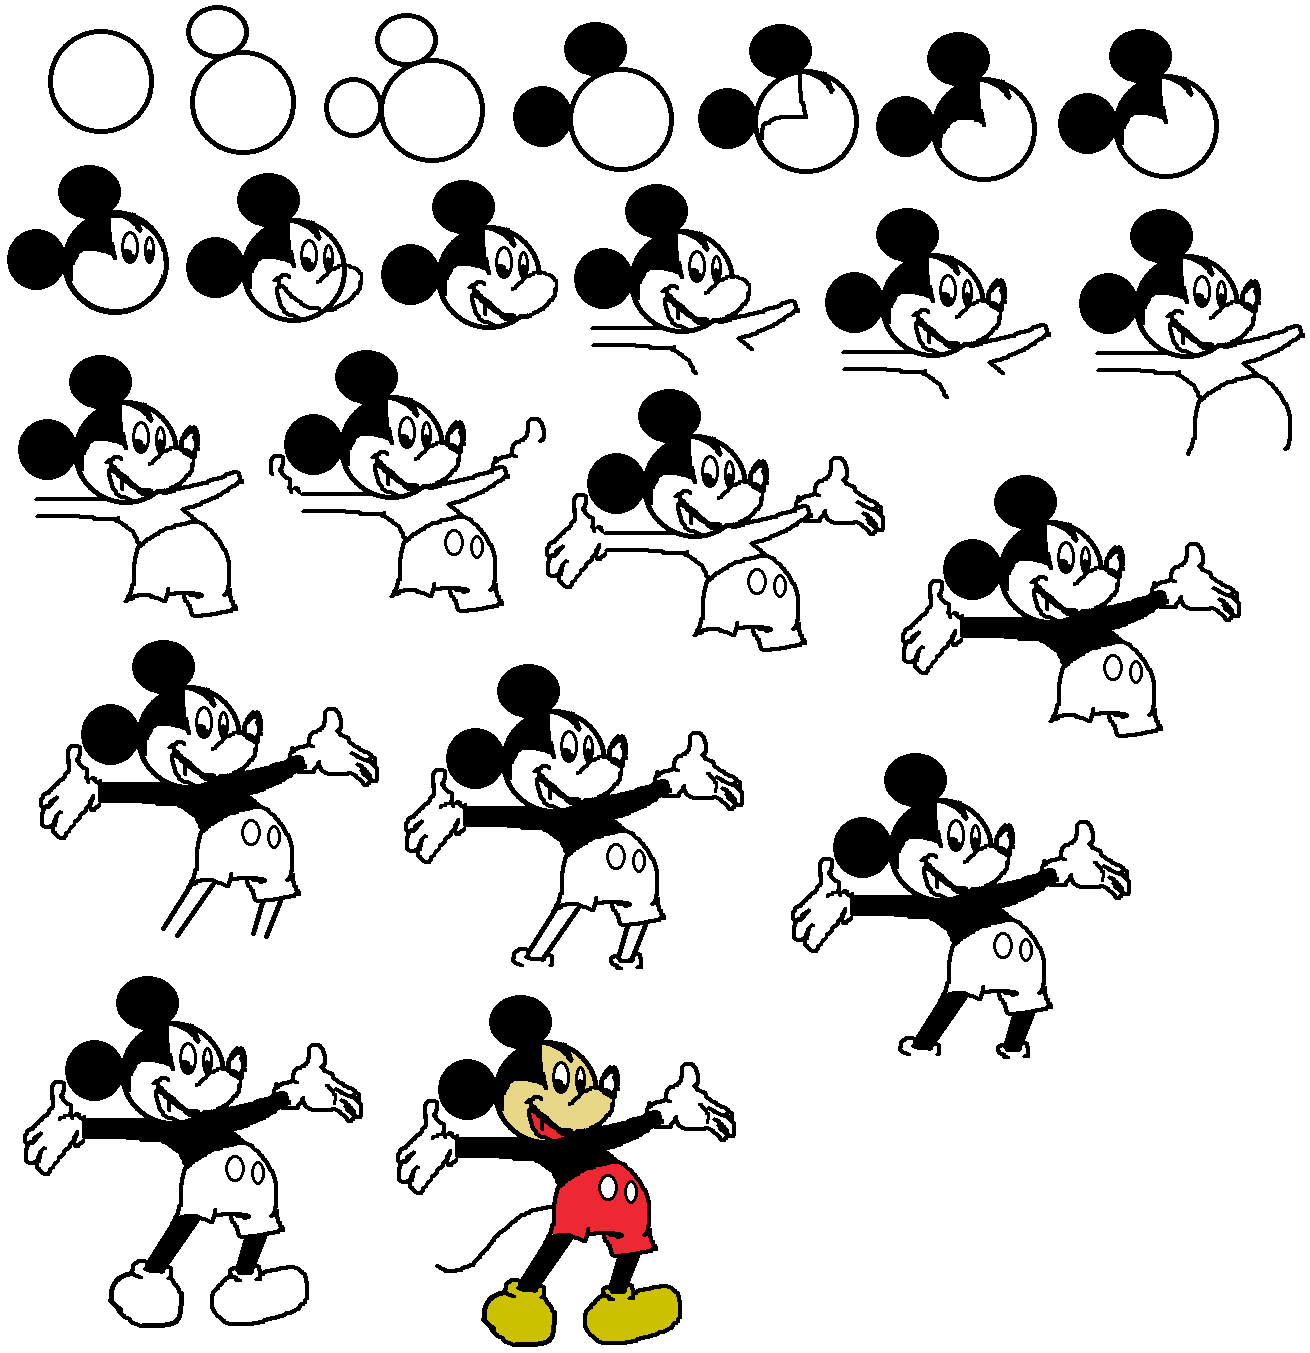 easy steps to draw disney characters pin by carol mays on how to draw cartoon drawings disney to steps easy characters draw